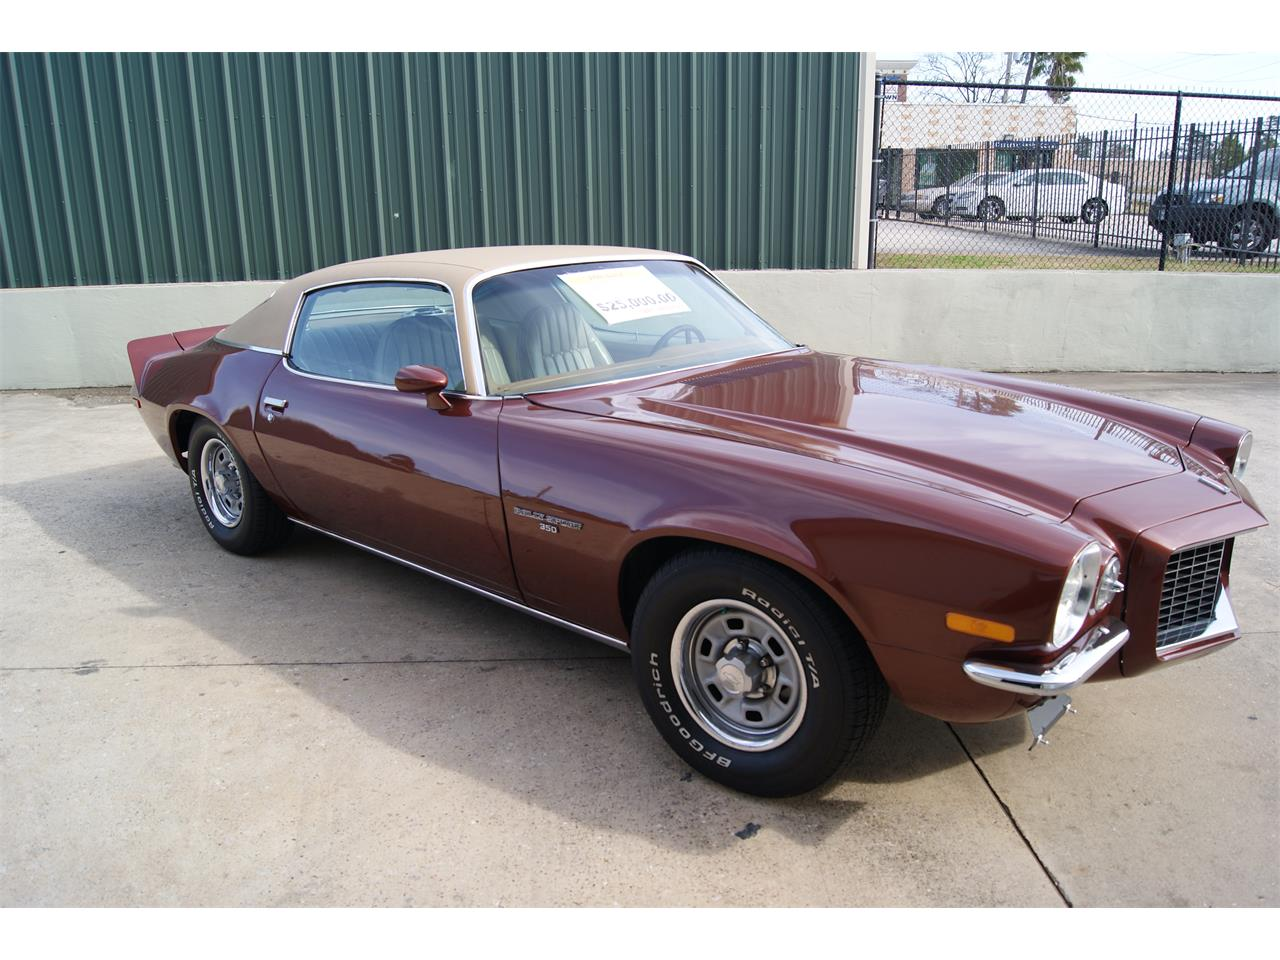 Large Picture of '71 Chevrolet Camaro RS located in Brownwood Texas - $34,900.00 Offered by a Private Seller - D749